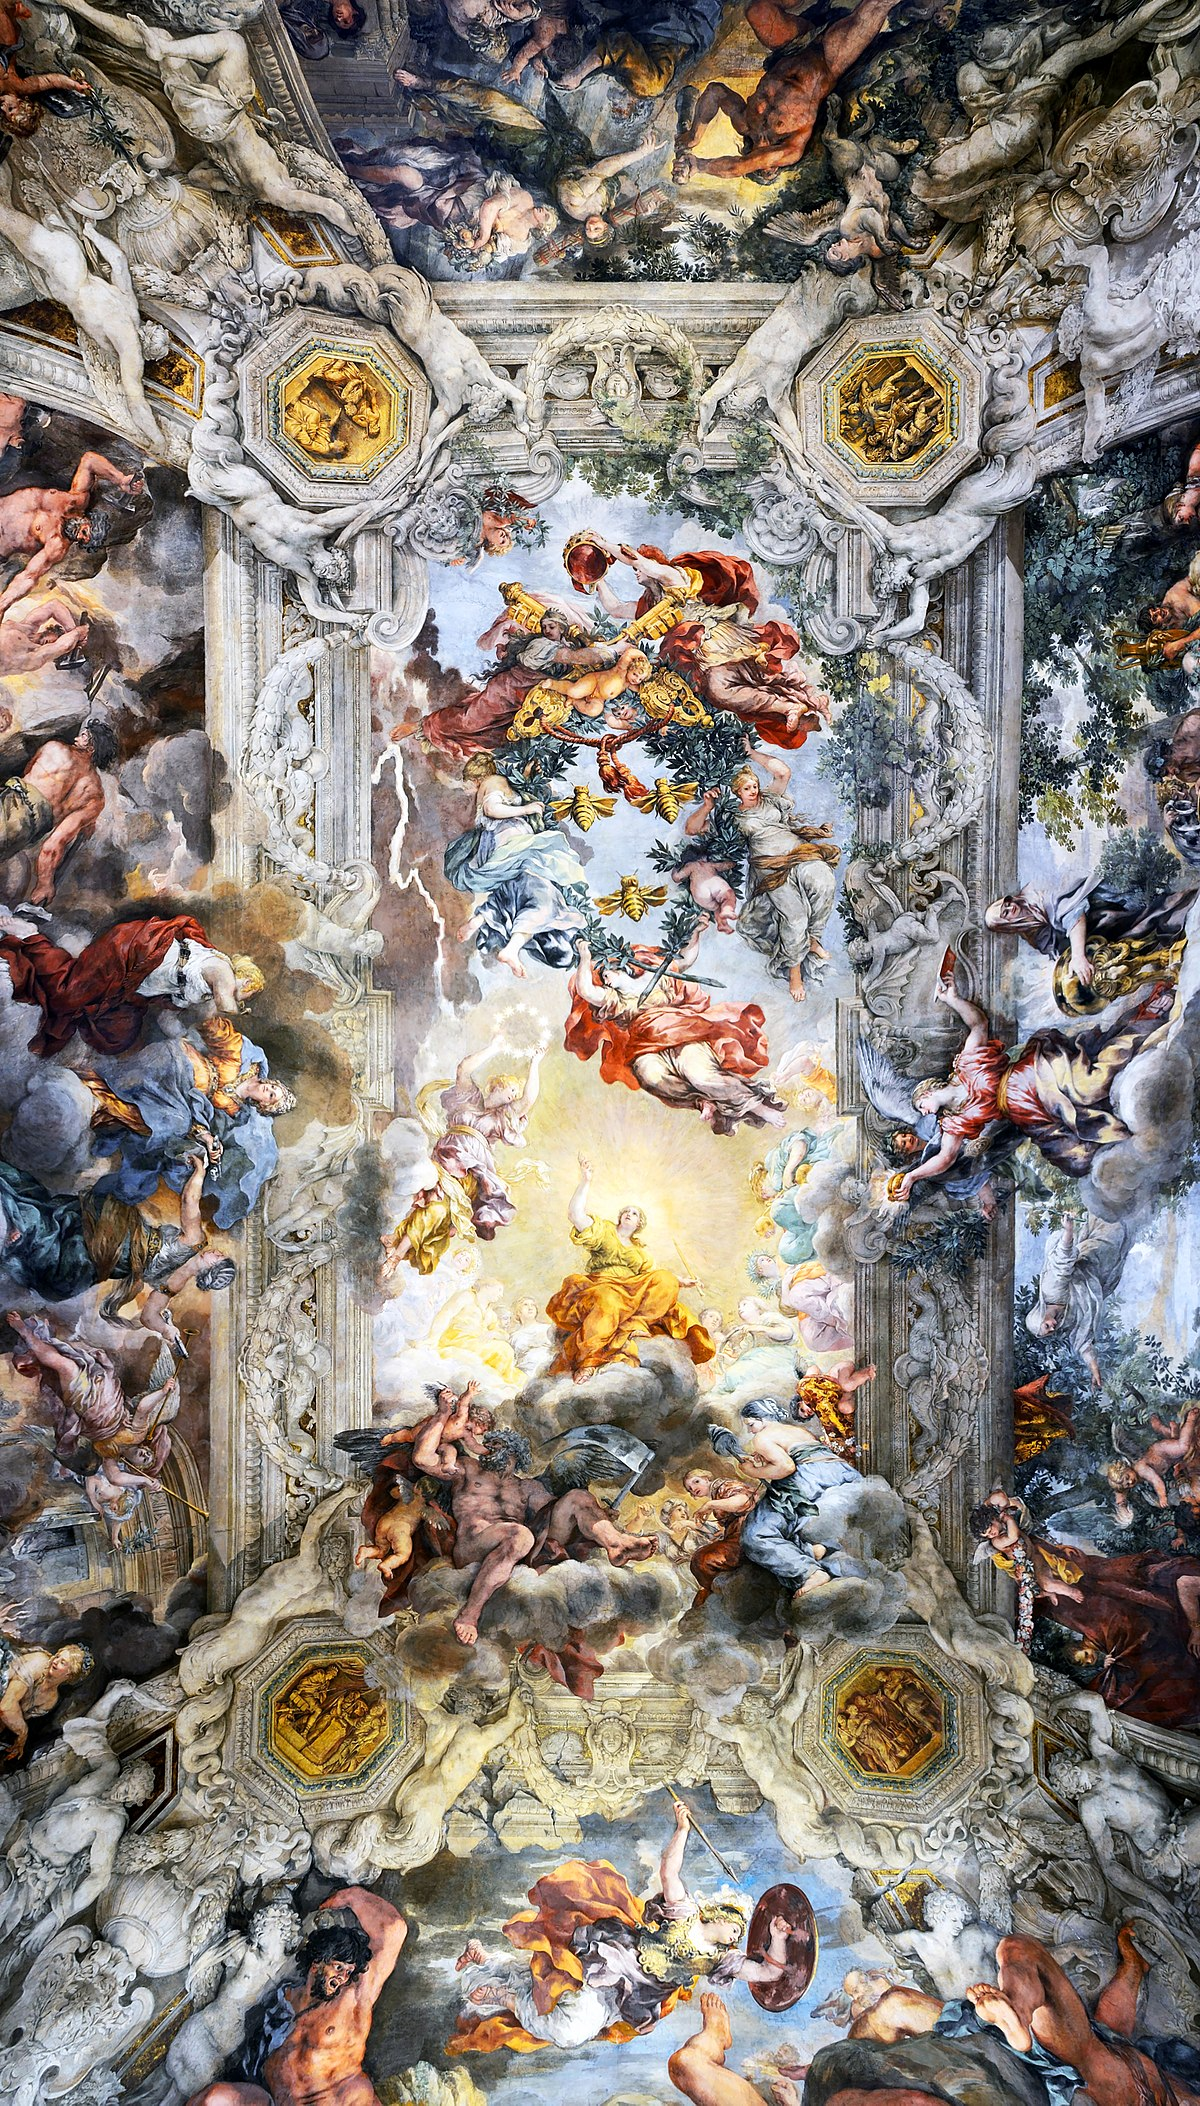 1200px-Ceiling_of_Palazzo_Barberini.jpg